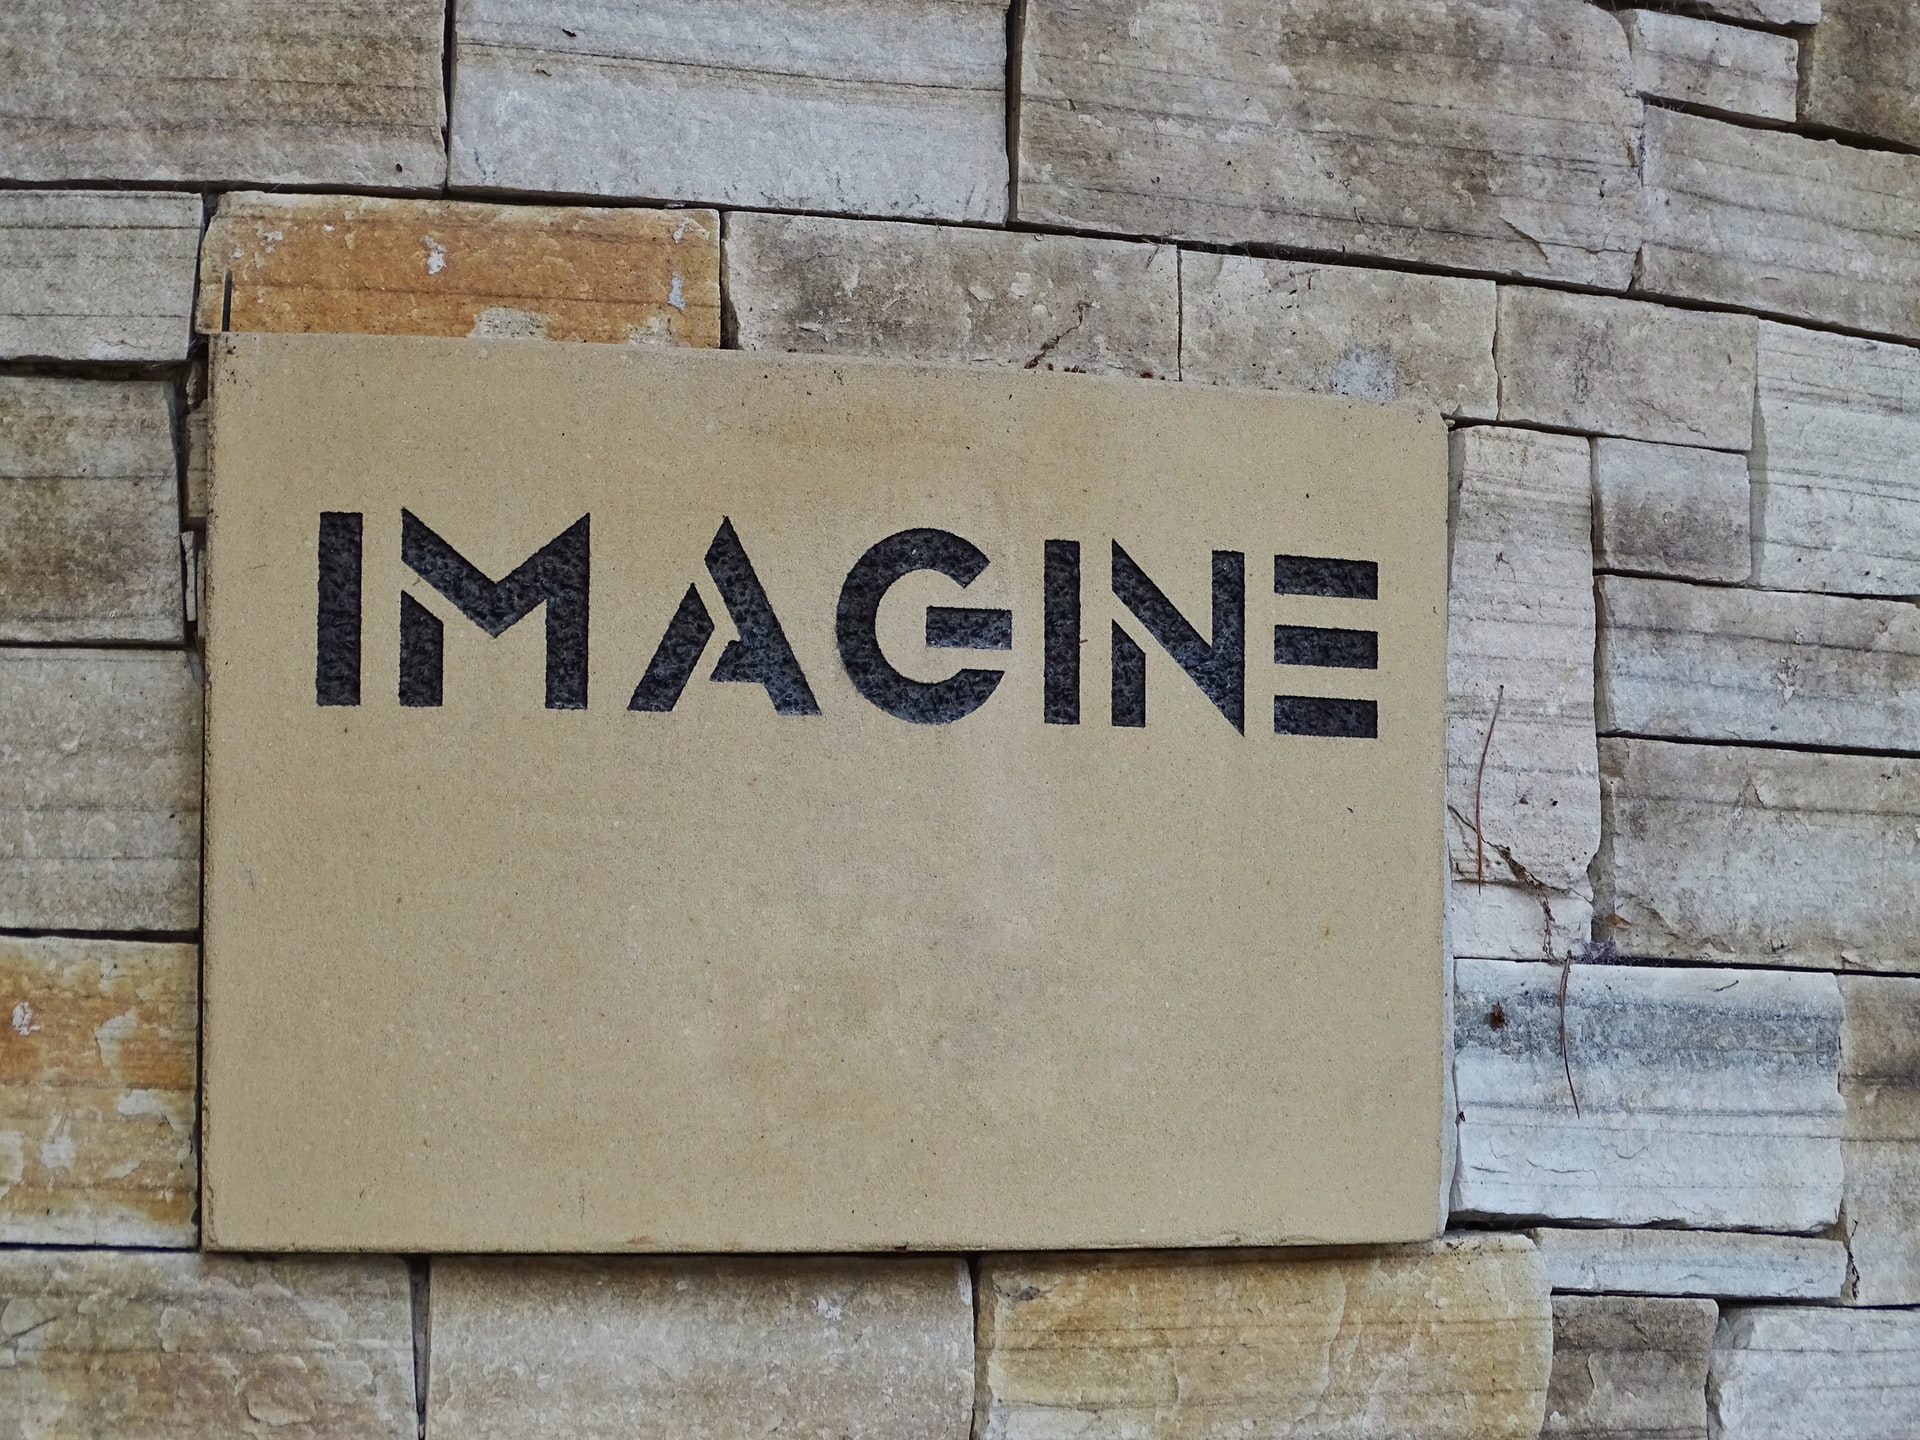 Innovation braucht Imagination